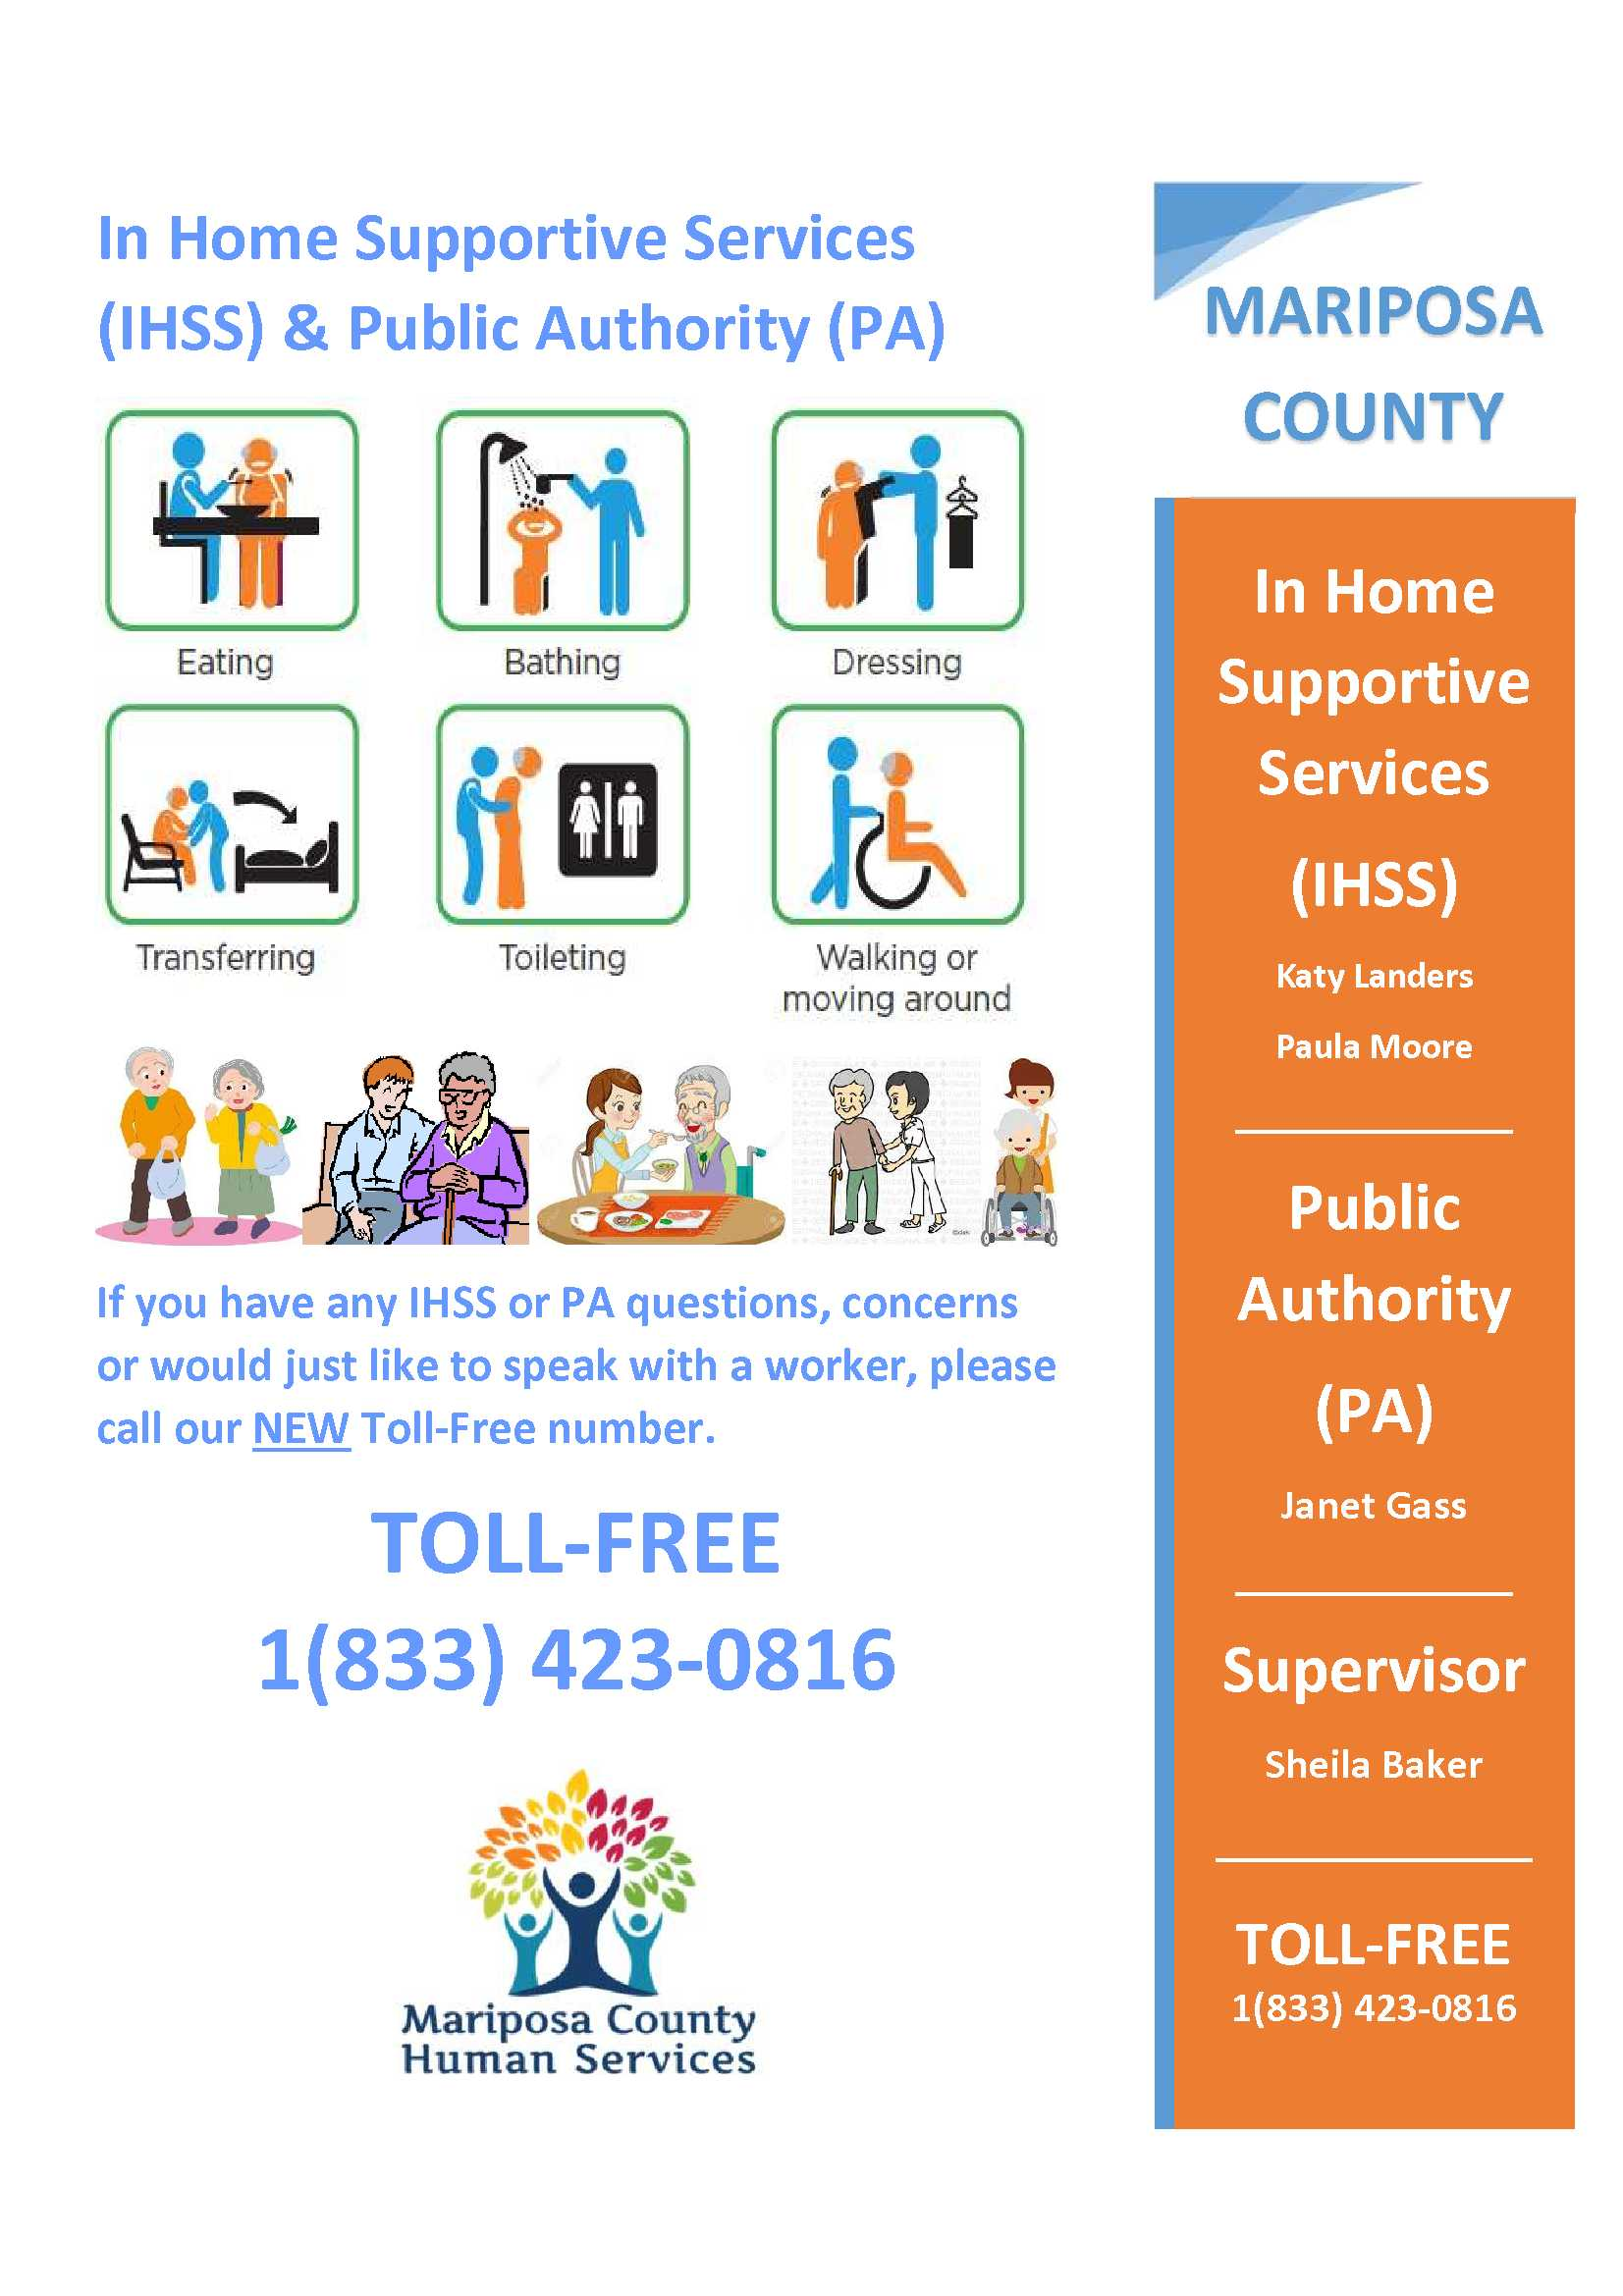 In Home Supportive Services Flyer 3.jpg